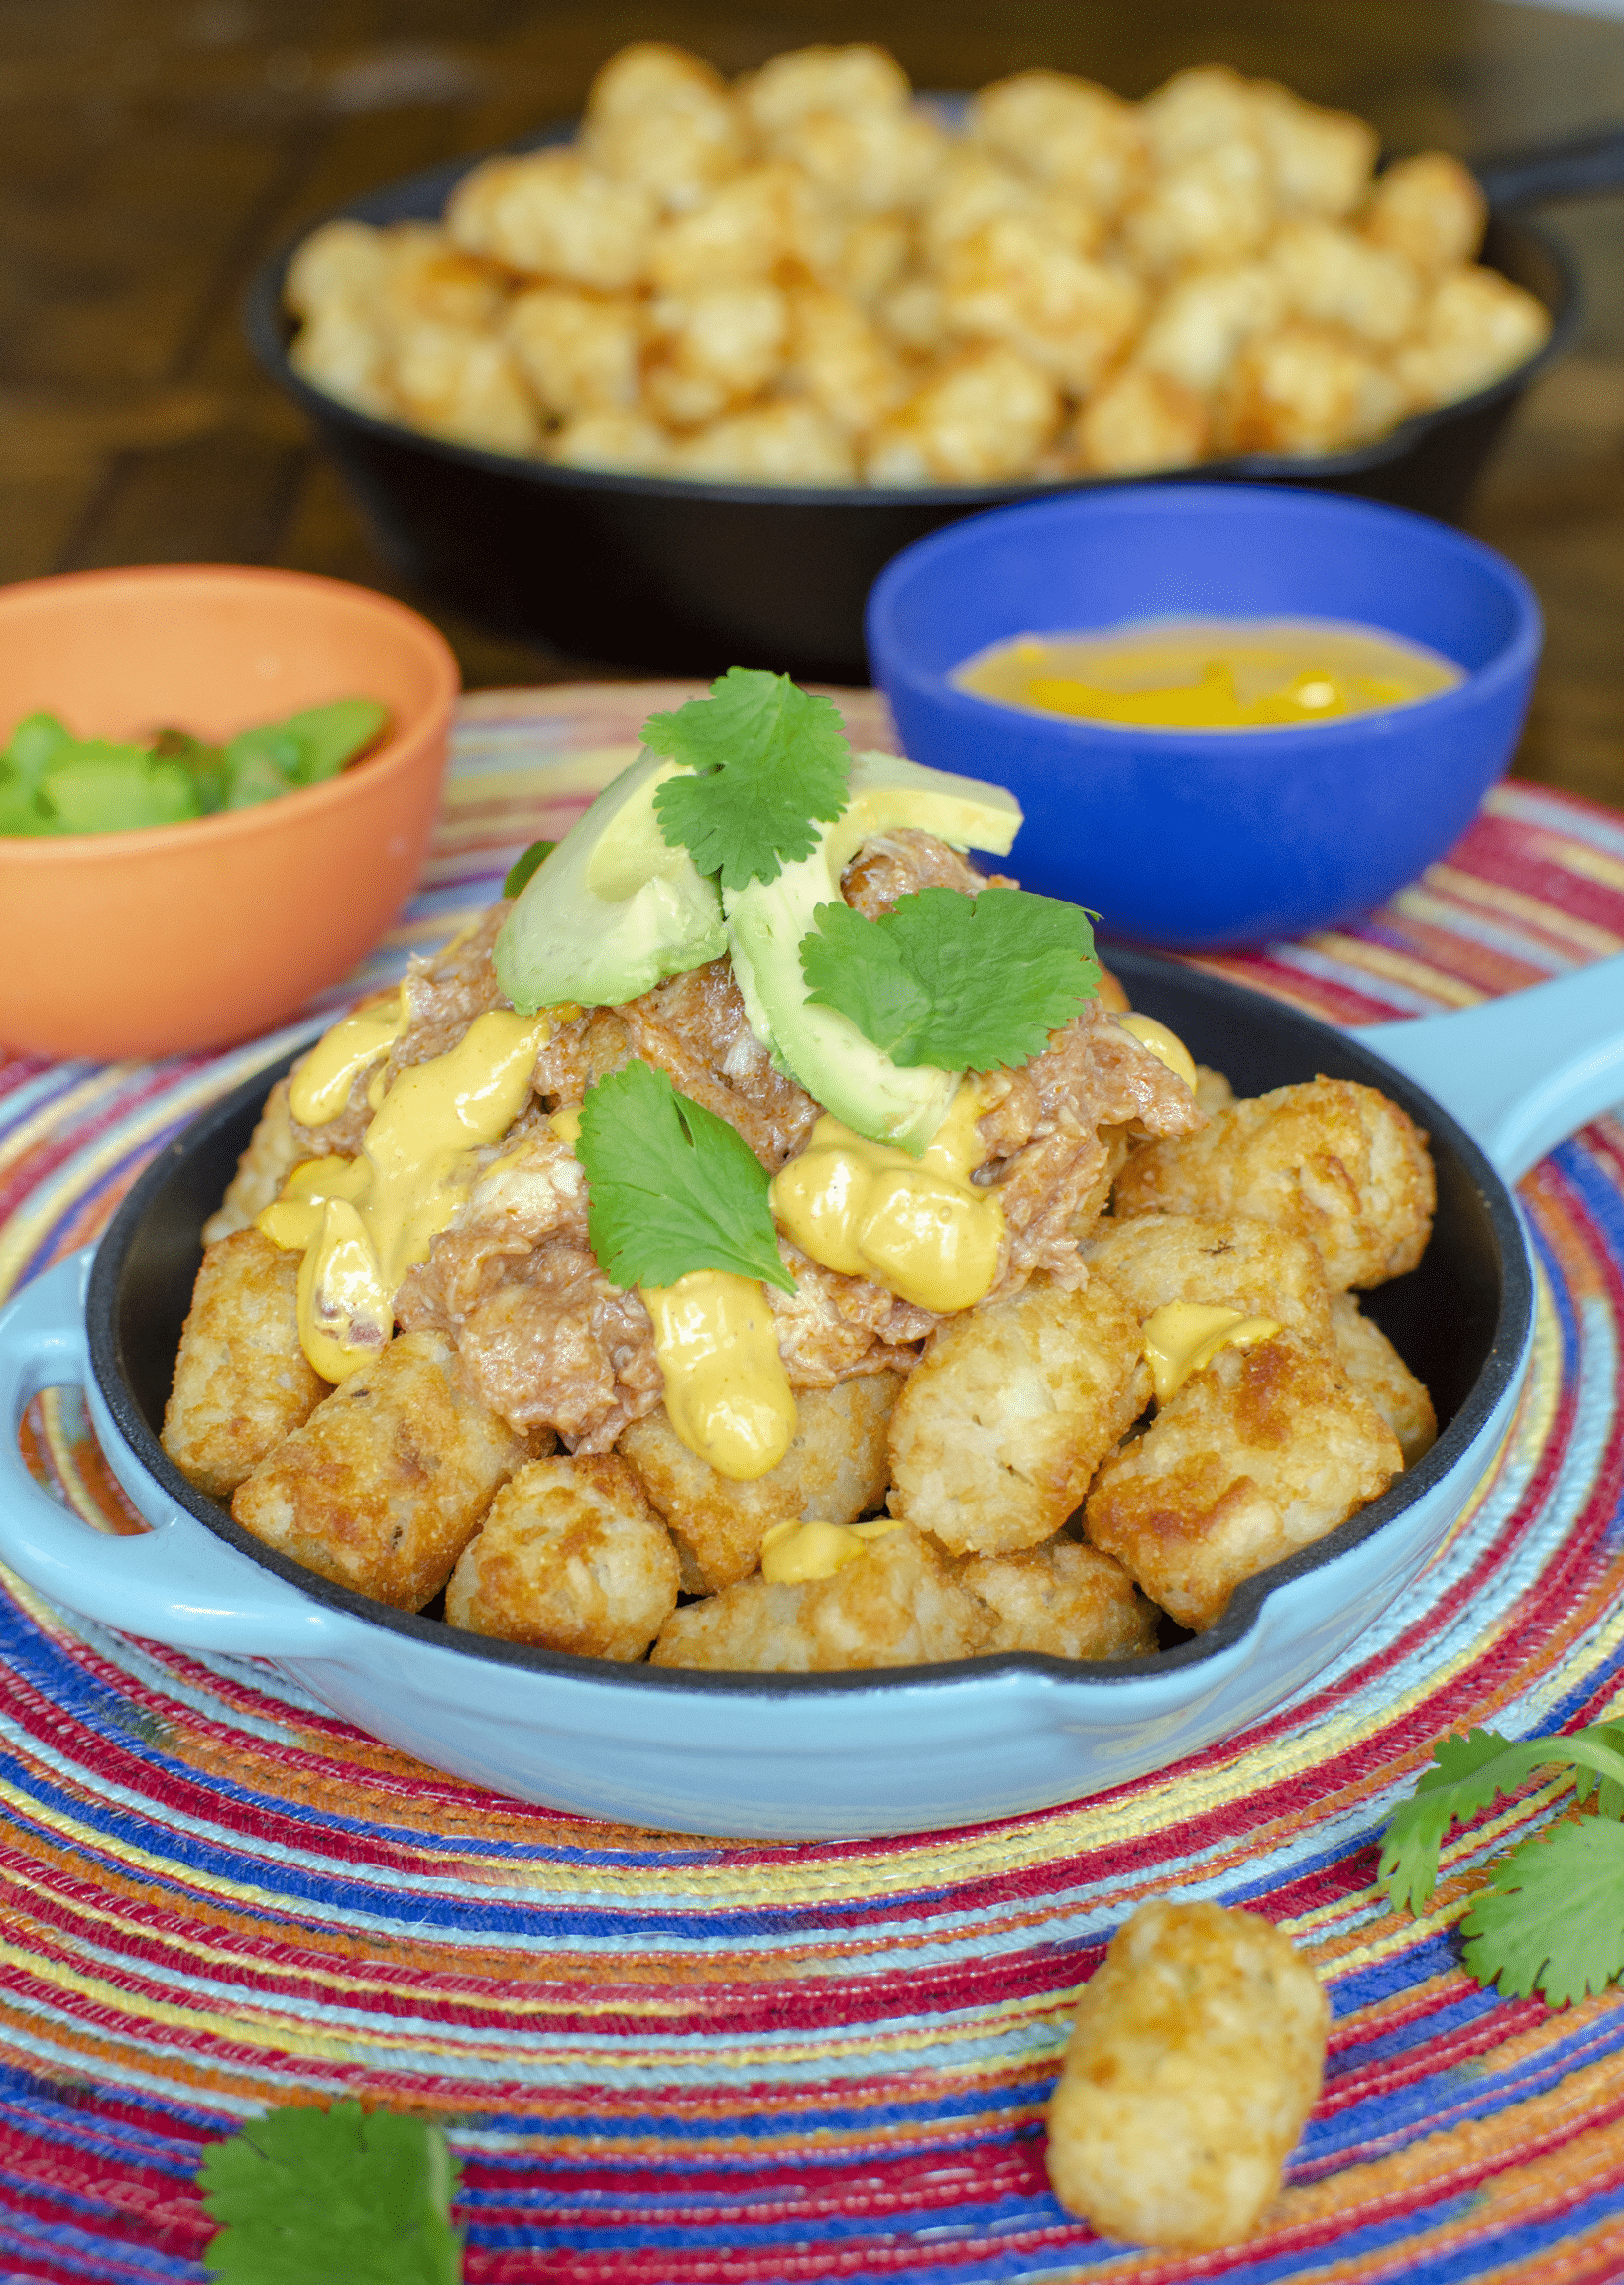 Gluten free dairy free totchos with bbq chicken